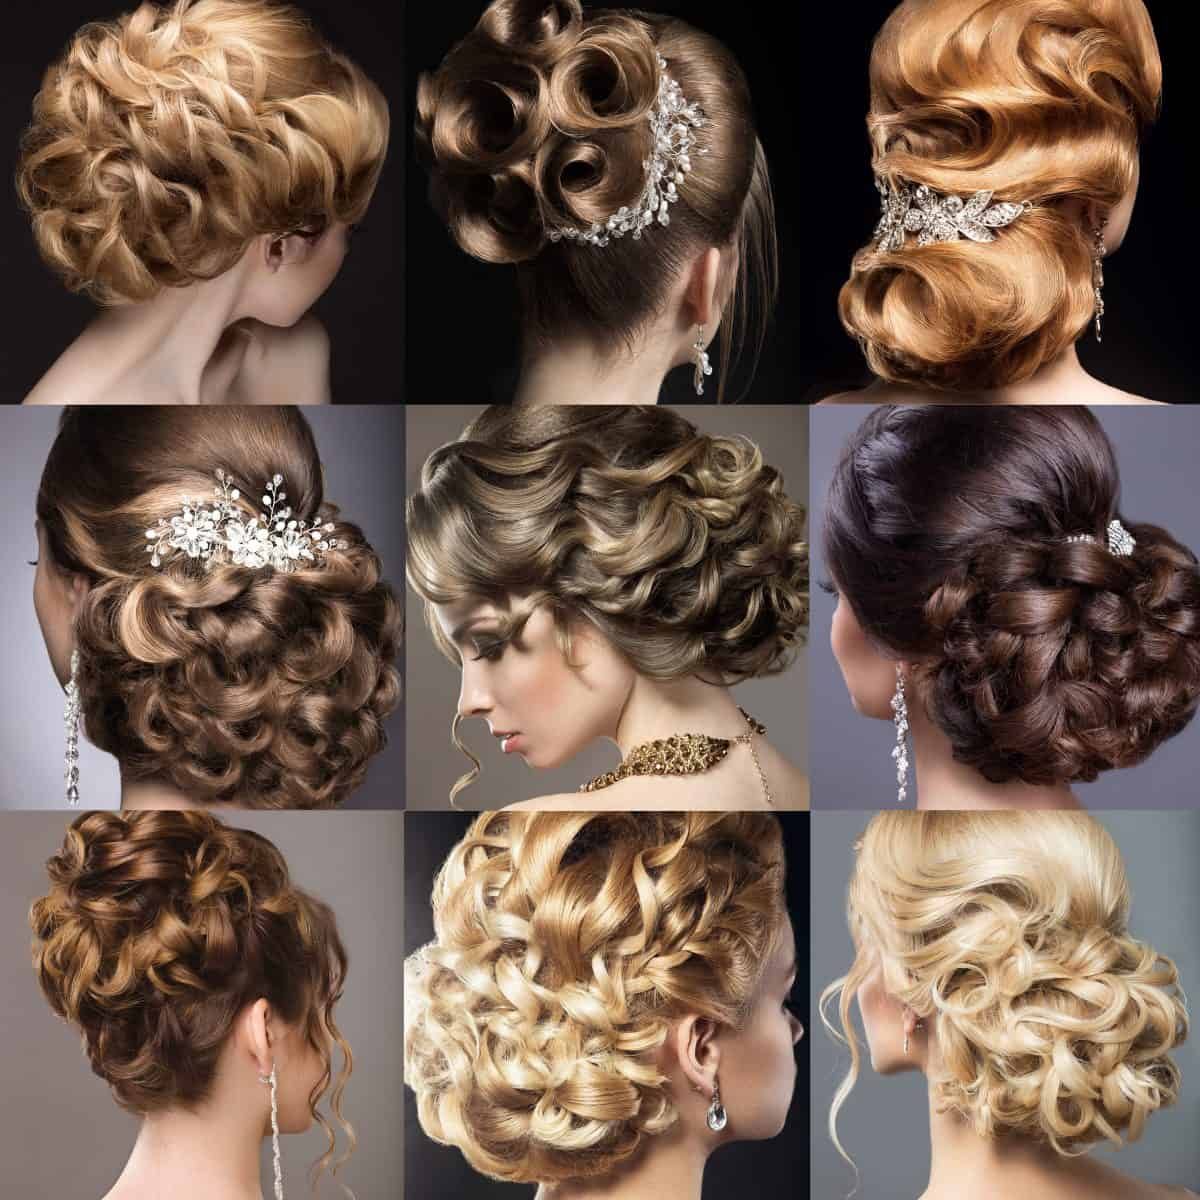 Collection of wedding hairstyles.